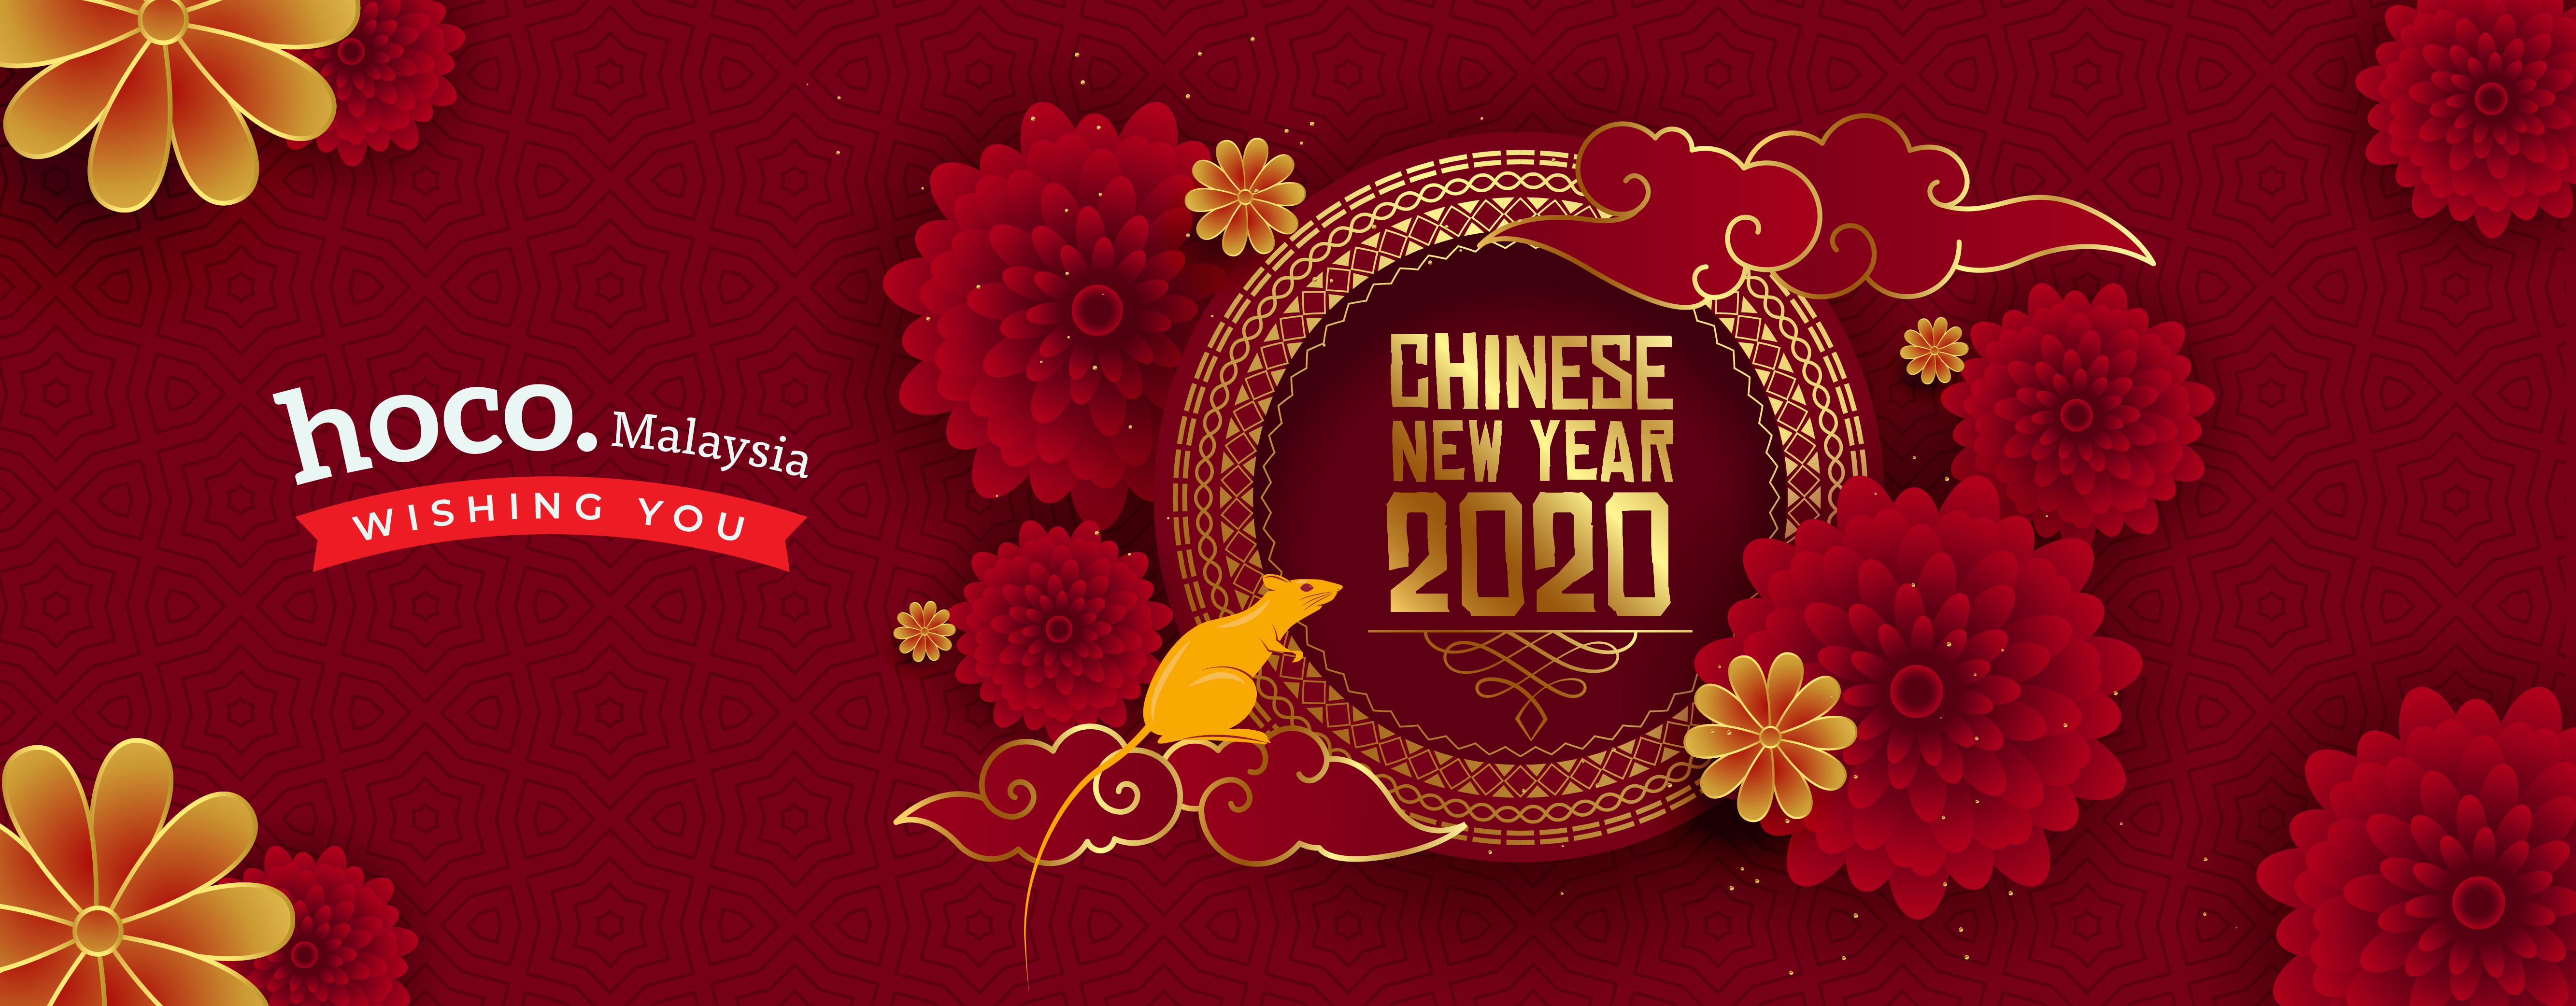 CHINESE NEW YEAR WEBSITE BANNER-01